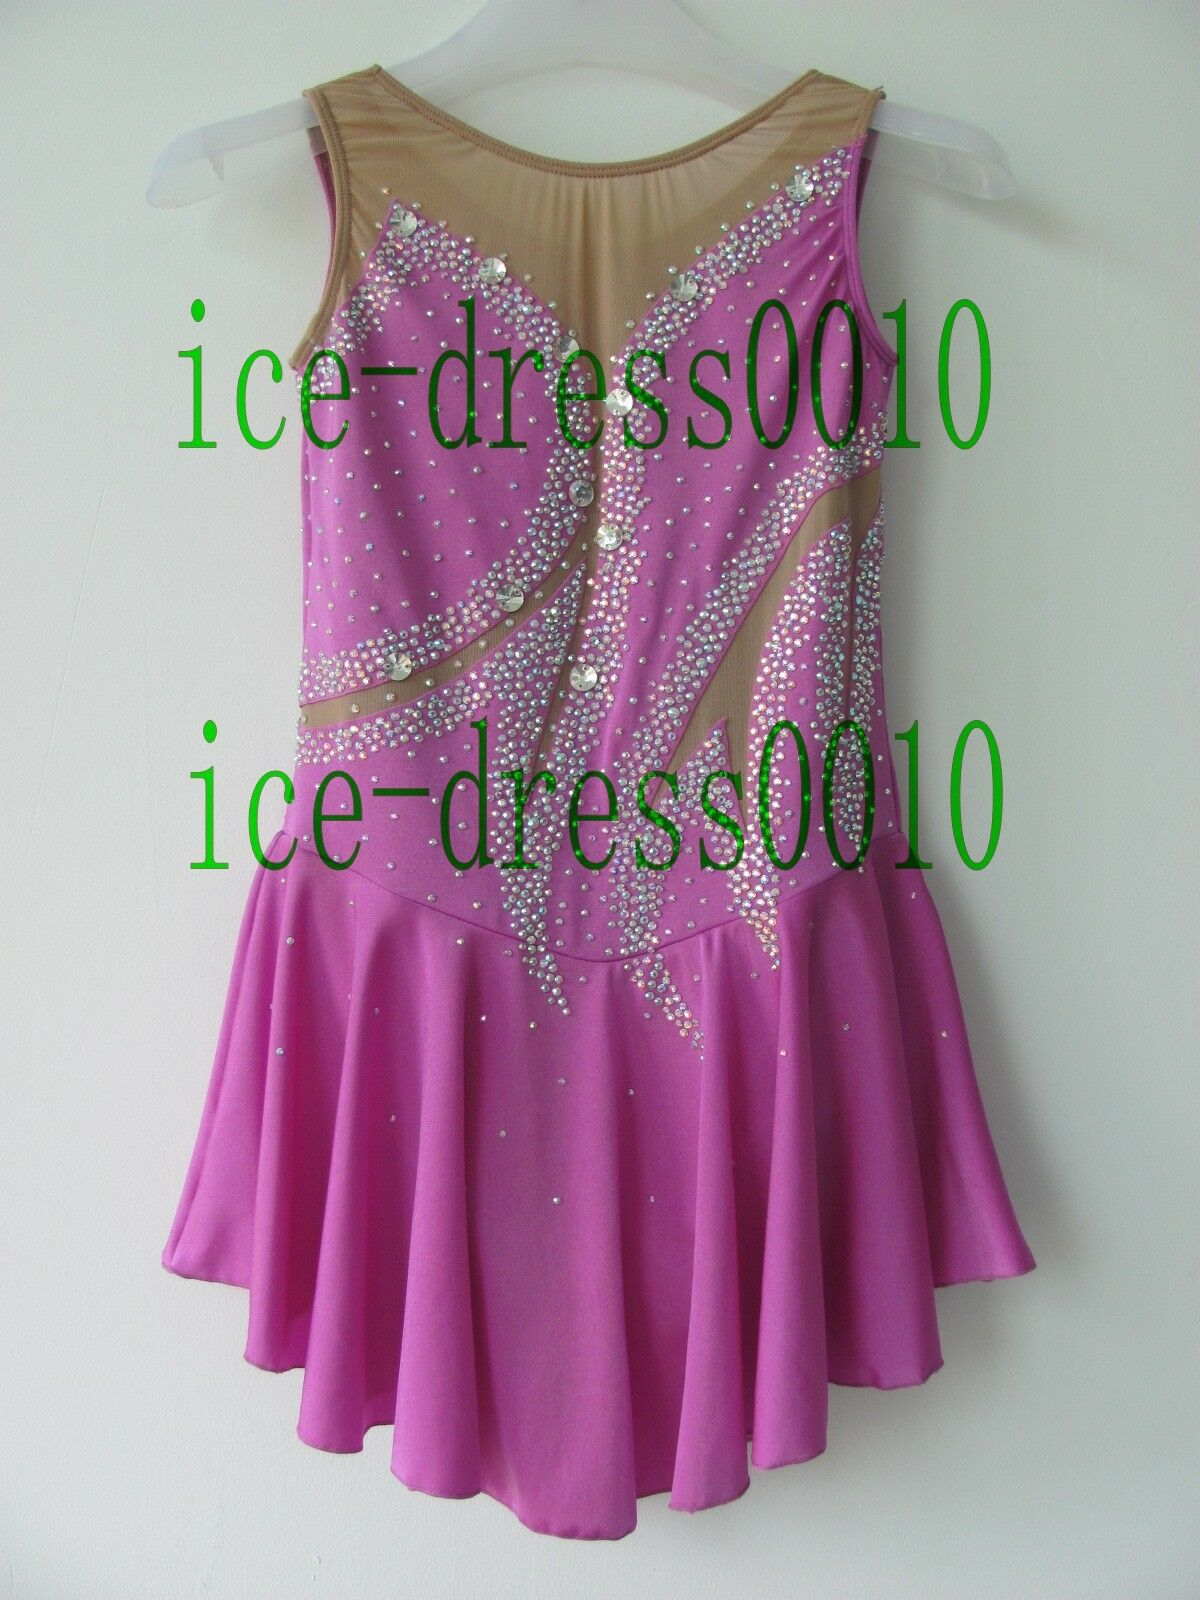 2018 new style Figure Skating Ice Skating Dress Gymnastics Costume 113-14